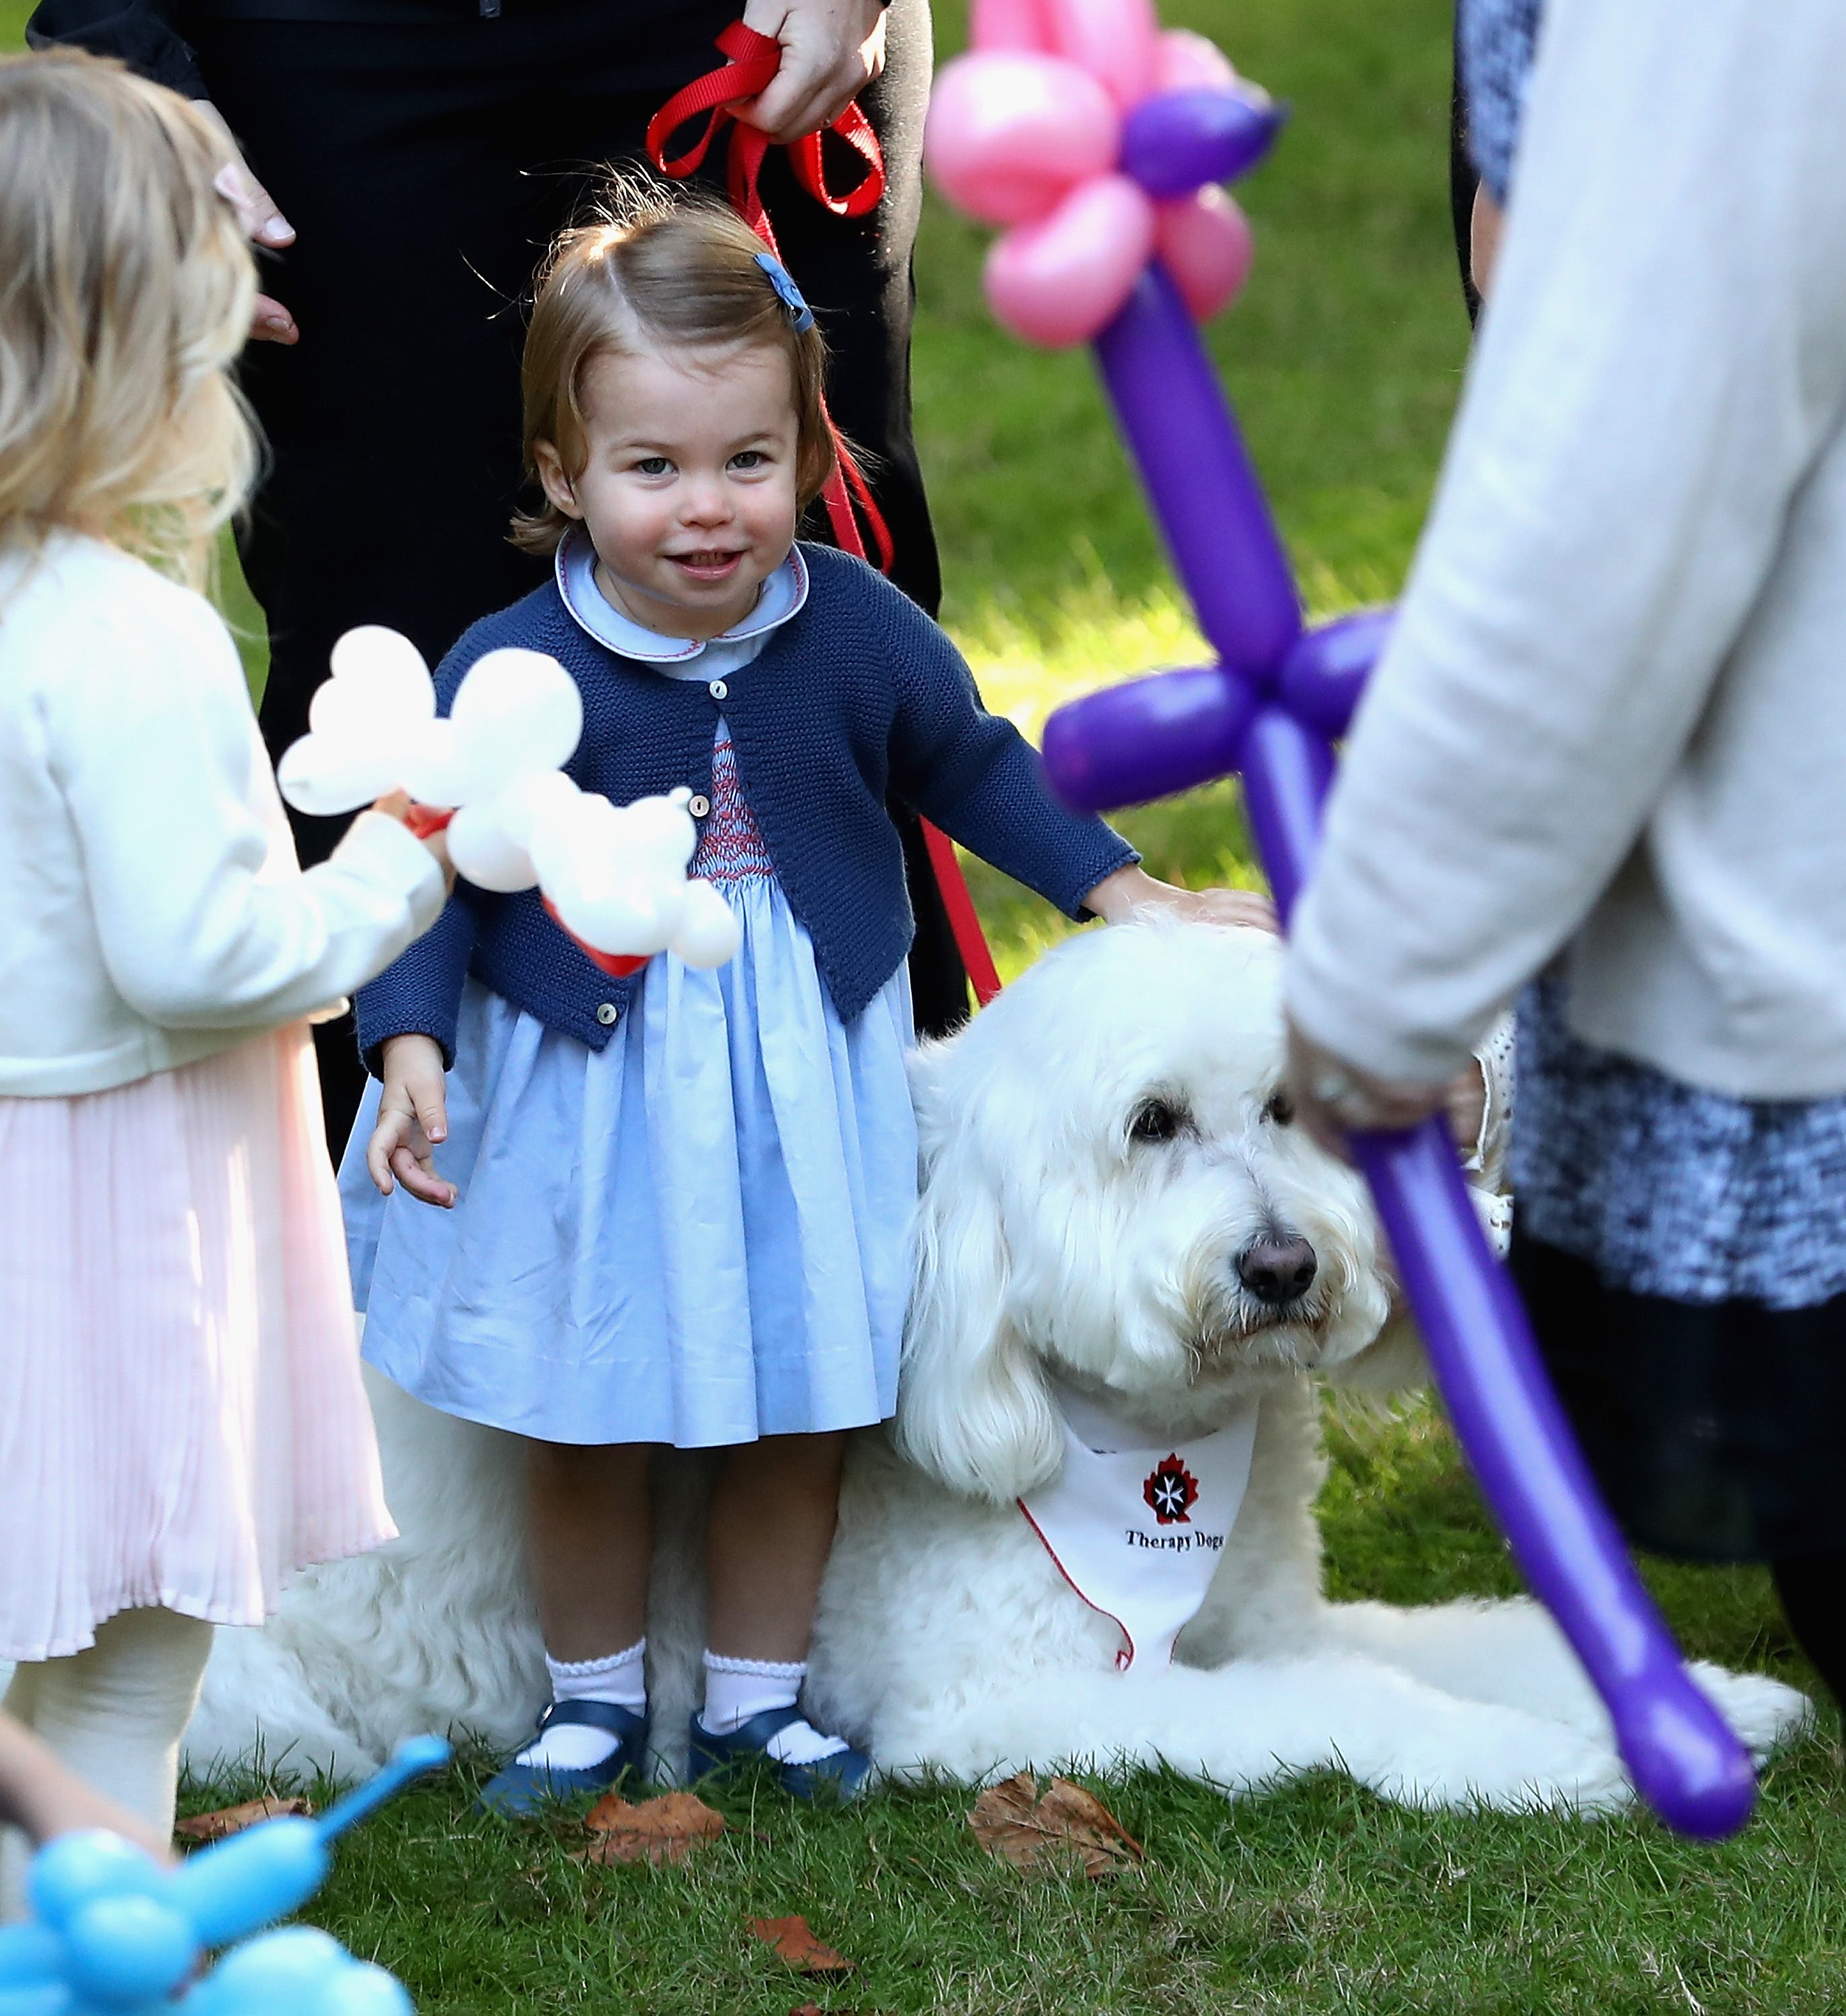 VICTORIA, BC - SEPTEMBER 29: Princess Charlotte of Cambridge plays with a dog named Moose at a children's party for Military families during the Royal Tour of Canada on September 29, 2016 in Victoria, Canada. Prince William, Duke of Cambridge, Catherine, Duchess of Cambridge, Prince George and Princess Charlotte are visiting Canada as part of an eight day visit to the country taking in areas such as Bella Bella, Whitehorse and Kelowna (Photo by Chris Jackson - Pool/Getty Images)